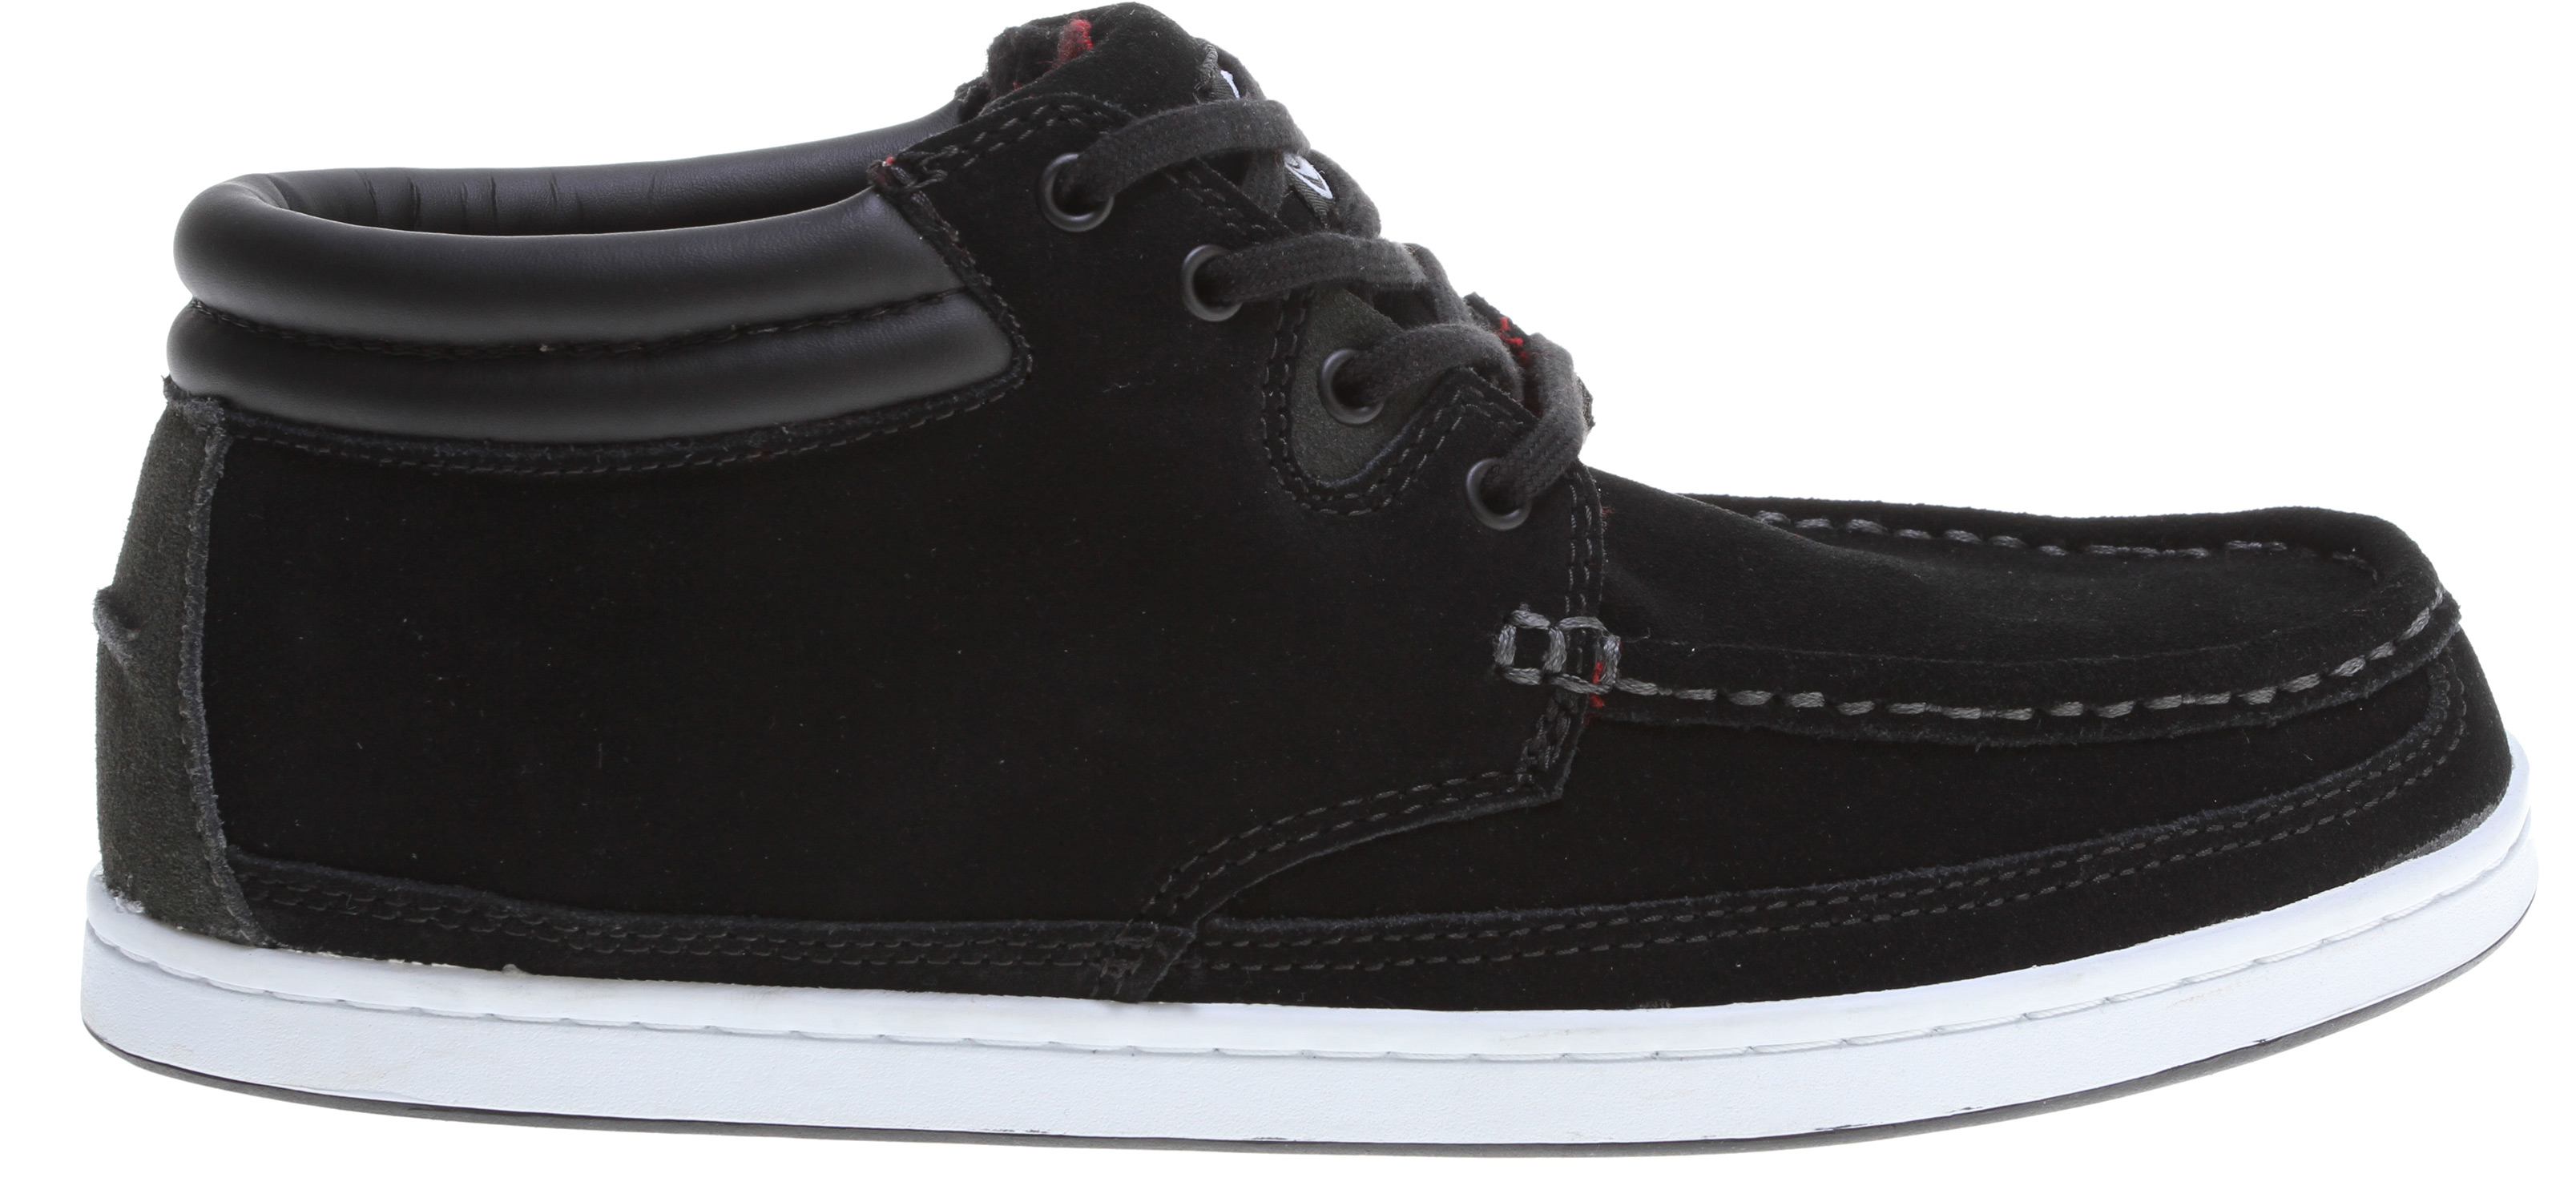 Hunting Key Features of the DVS Hunt Skate Shoes: Leather/Nubuck/Suede Upper Material Unique Toe Stitch Details Mid-Top Design For Extra Comfort Comfortable Collar Padding Non-Slip Herringbone Tread Pattern Flex Feel Technology - $44.95